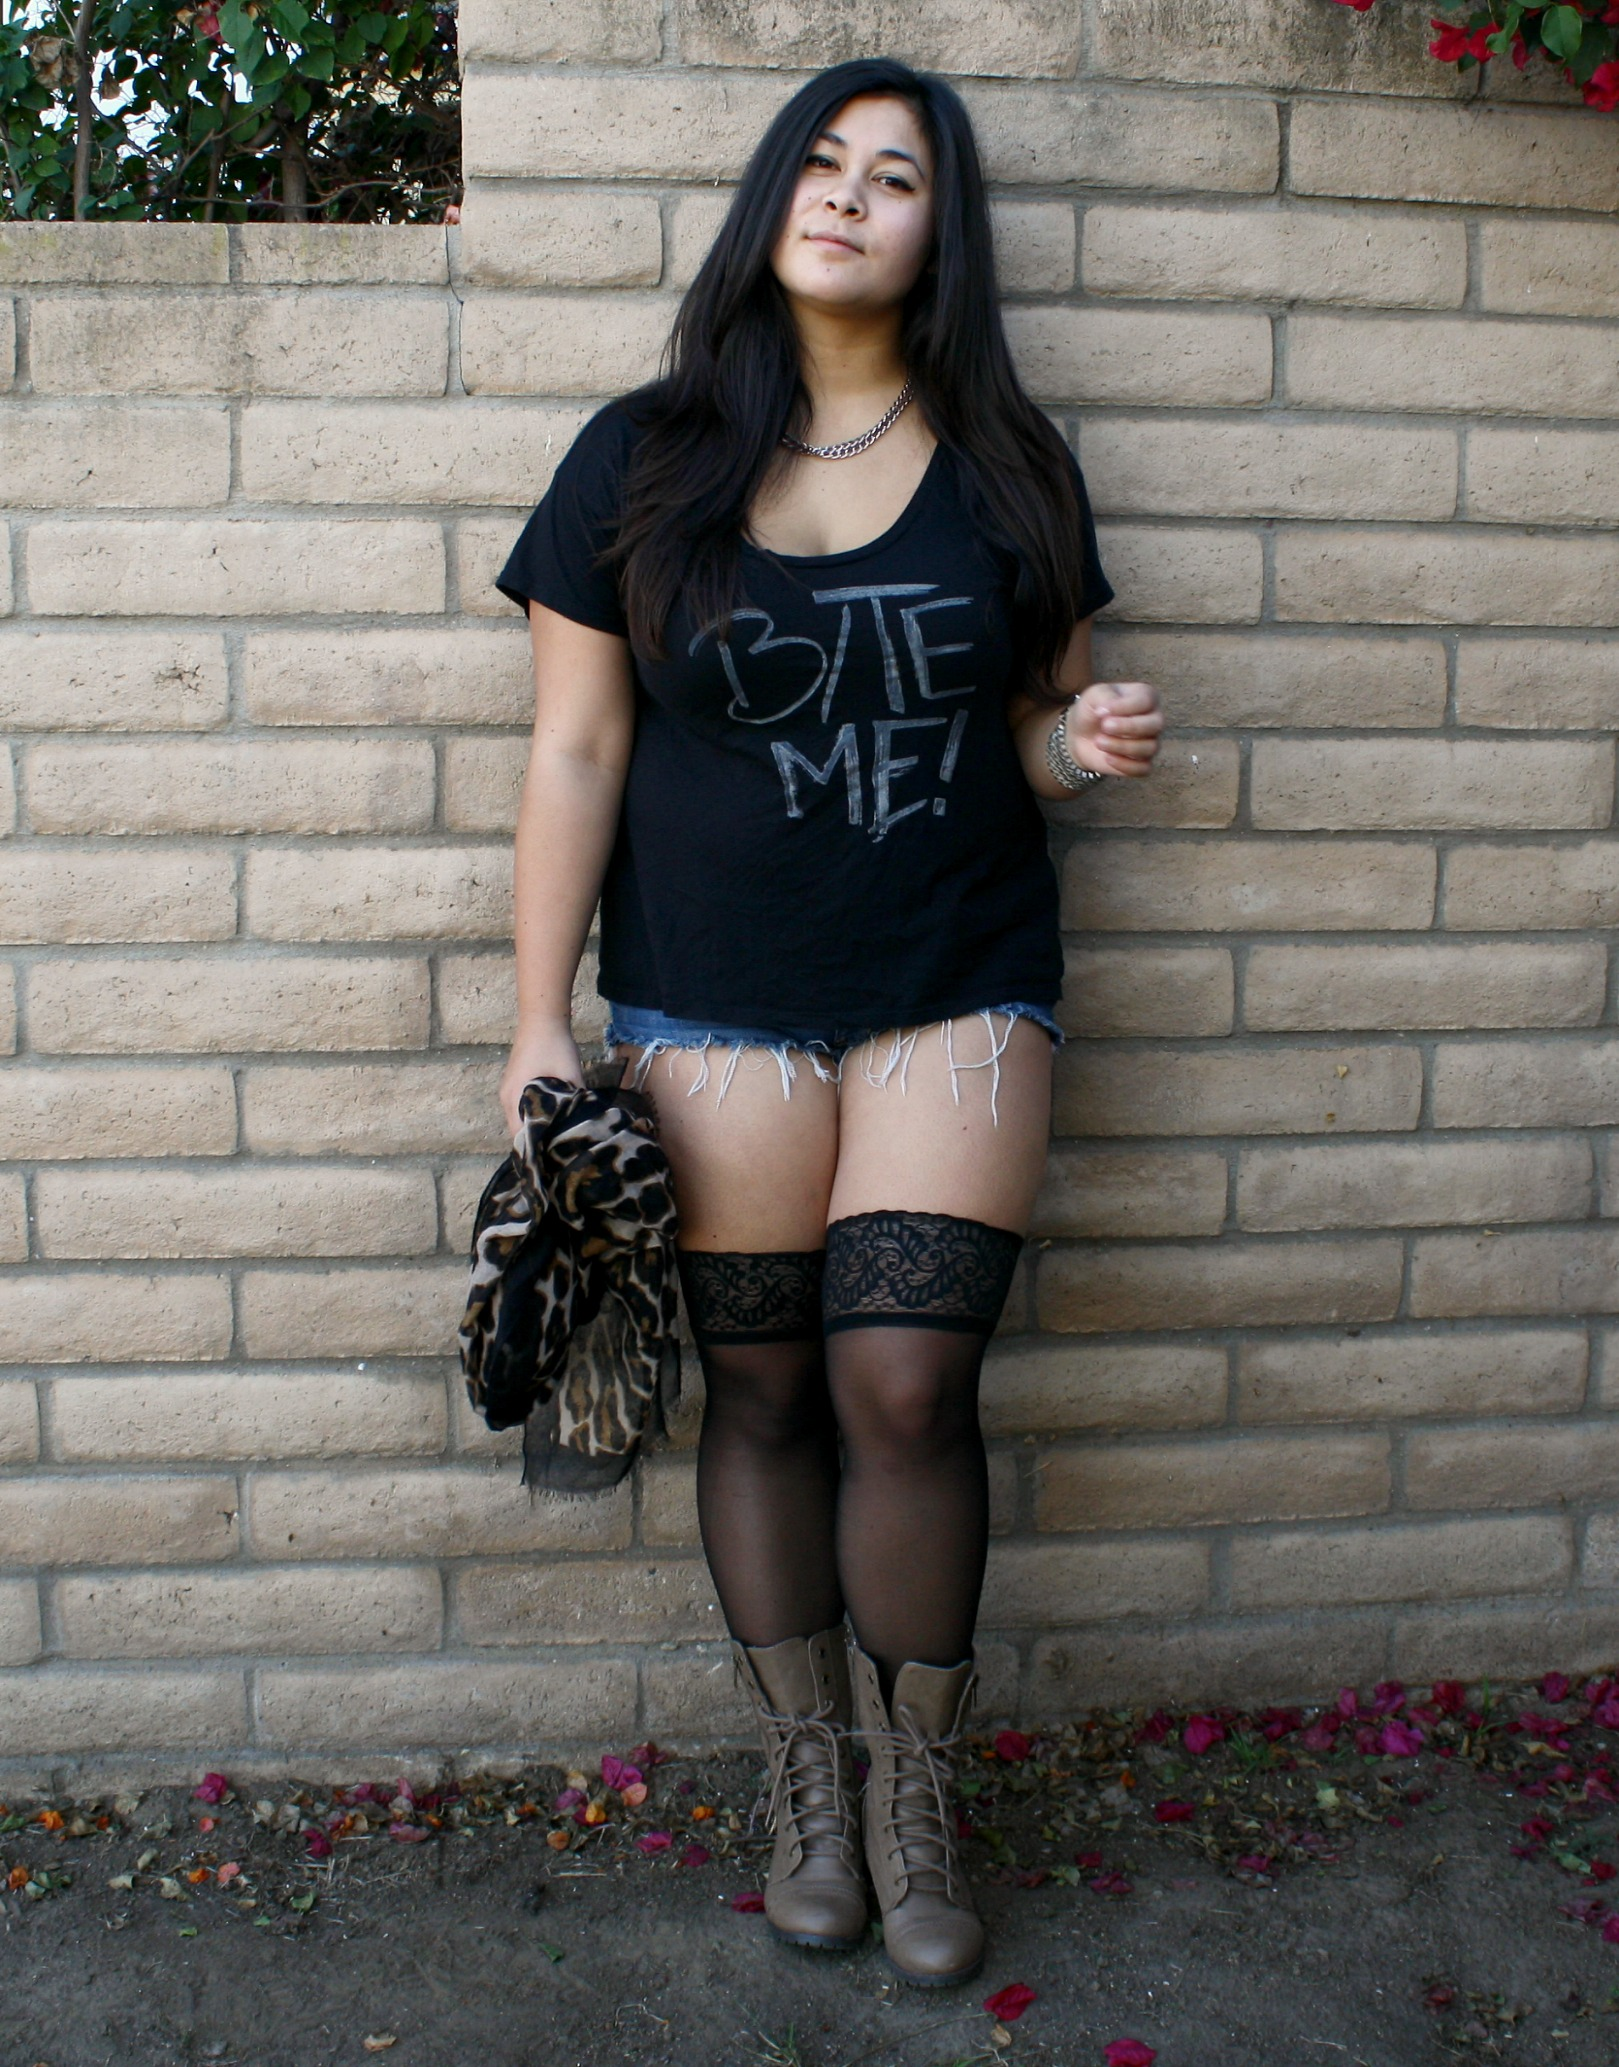 Graphic Quot Bite Me Quot Tee Amp Thigh High Stockings Ootd